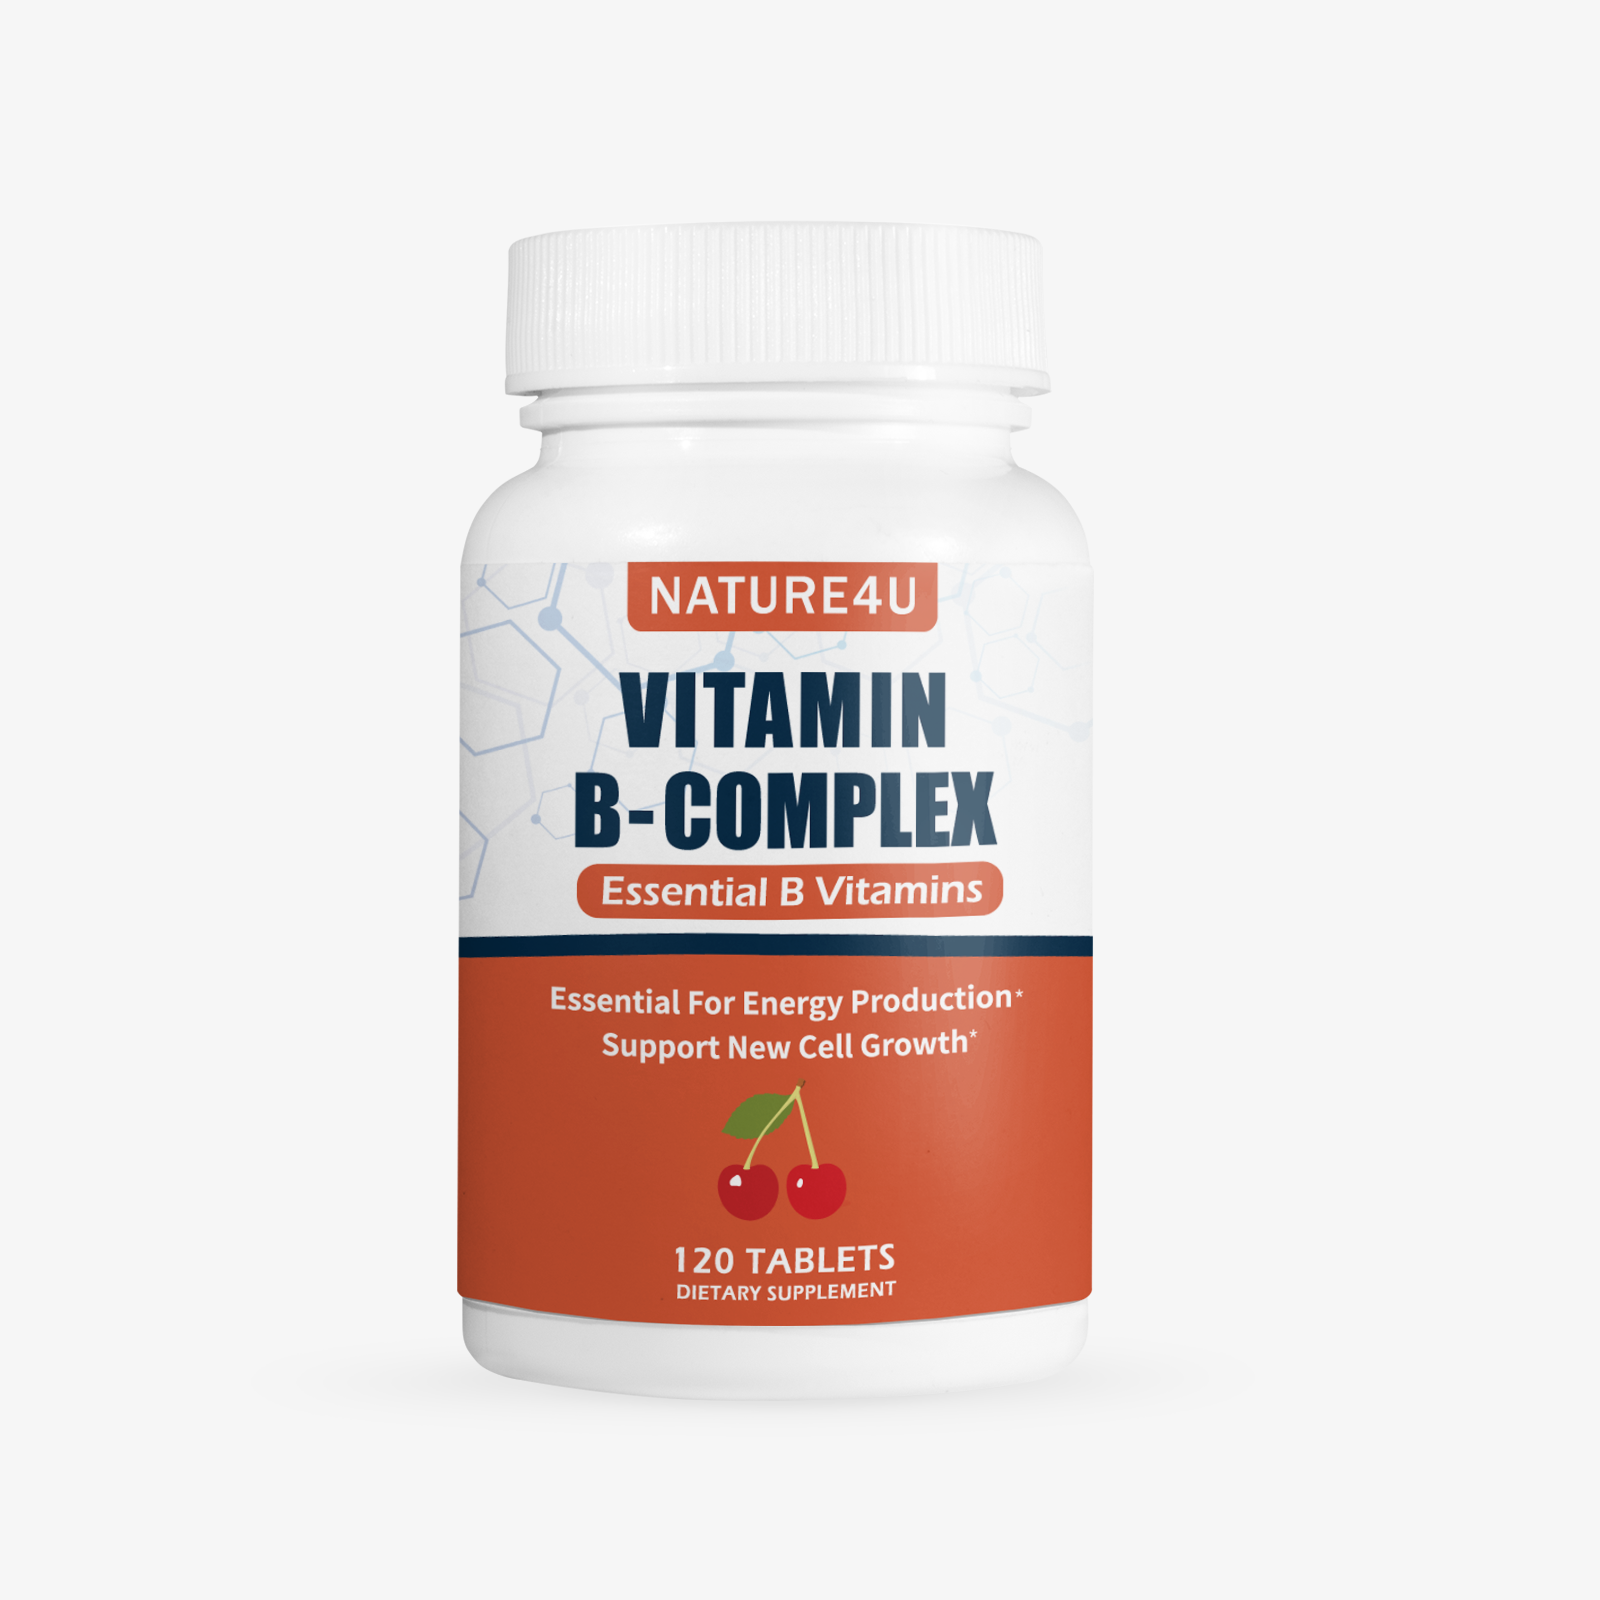 Vitamin B Complex - All B Vitamins 120 Tablets